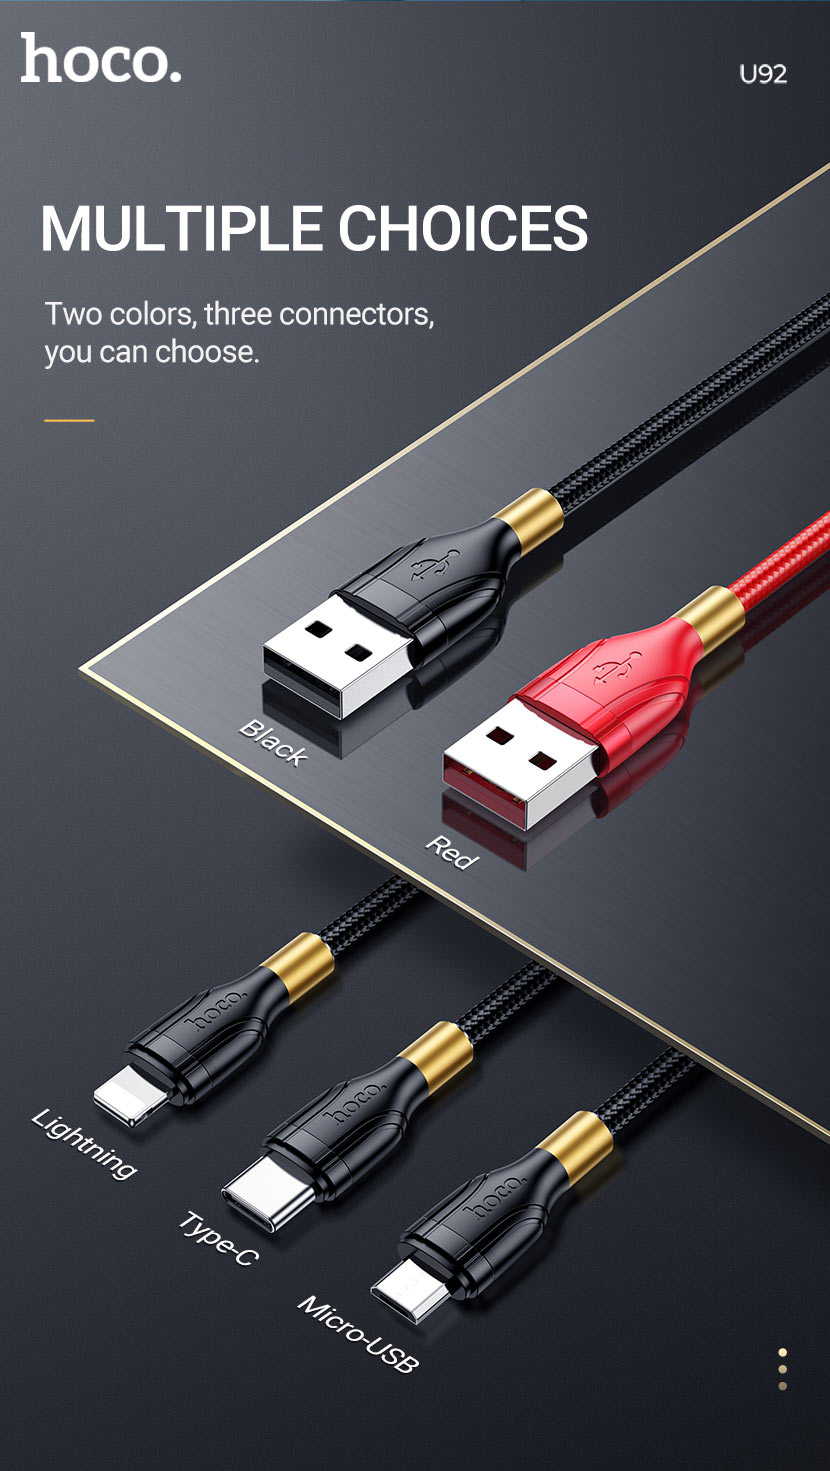 hoco news u92 gold collar charging data cable colors en